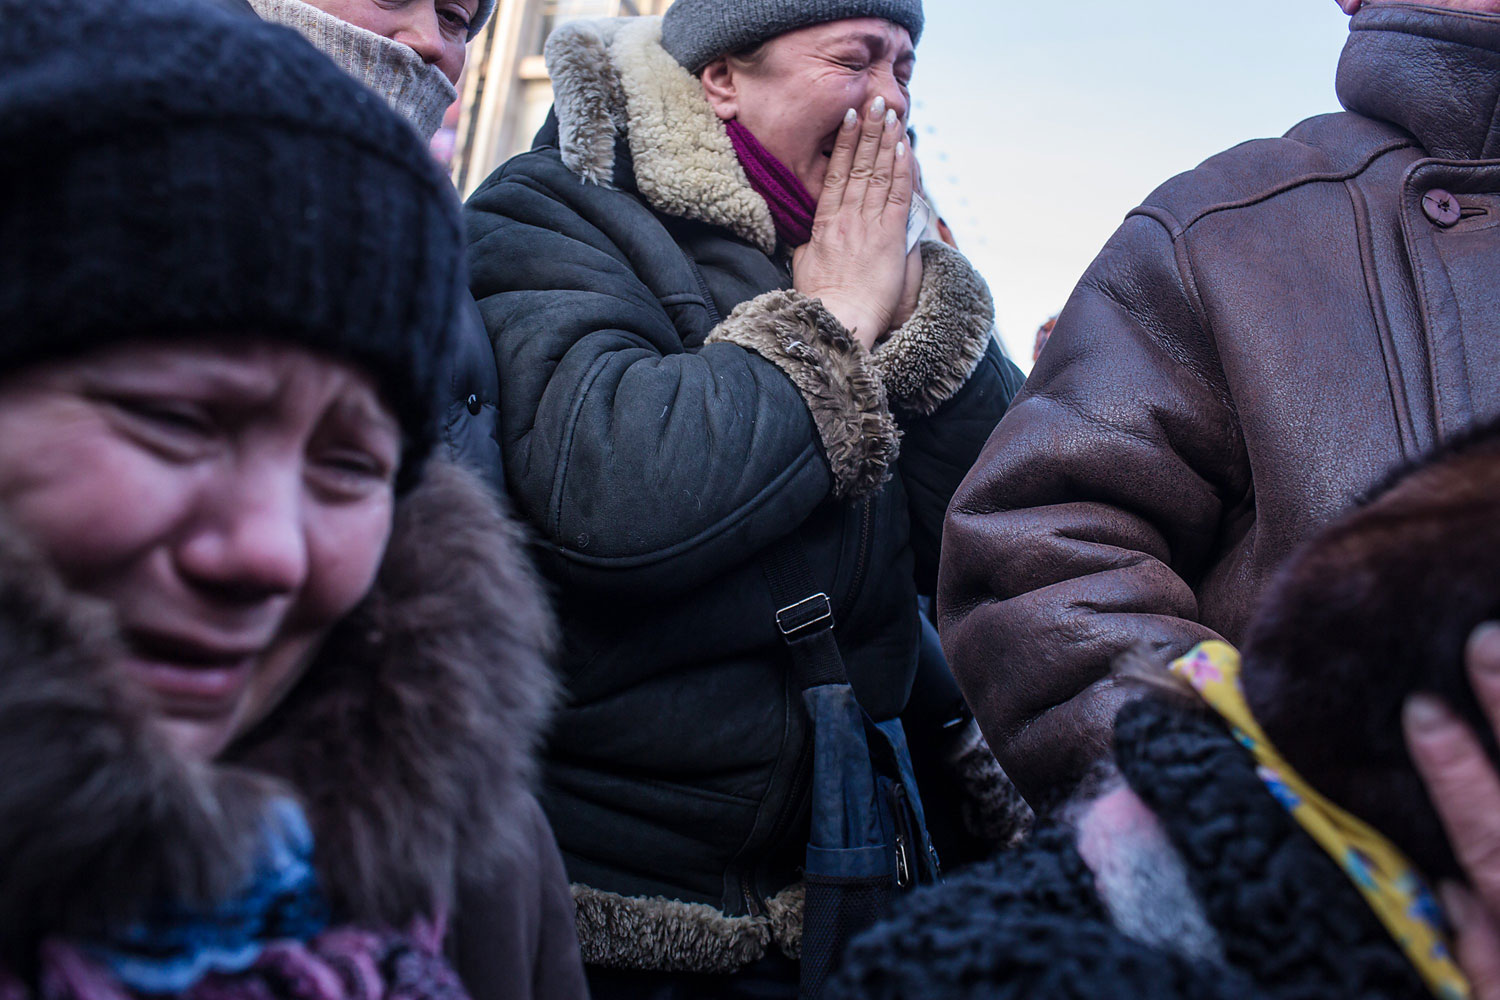 Women weep as a casket containing the body of Mikhail Zhiznevsky, 25, an anti-government protester who was killed in clashes with police, is carried past on Jan. 26, 2014 in Kiev.